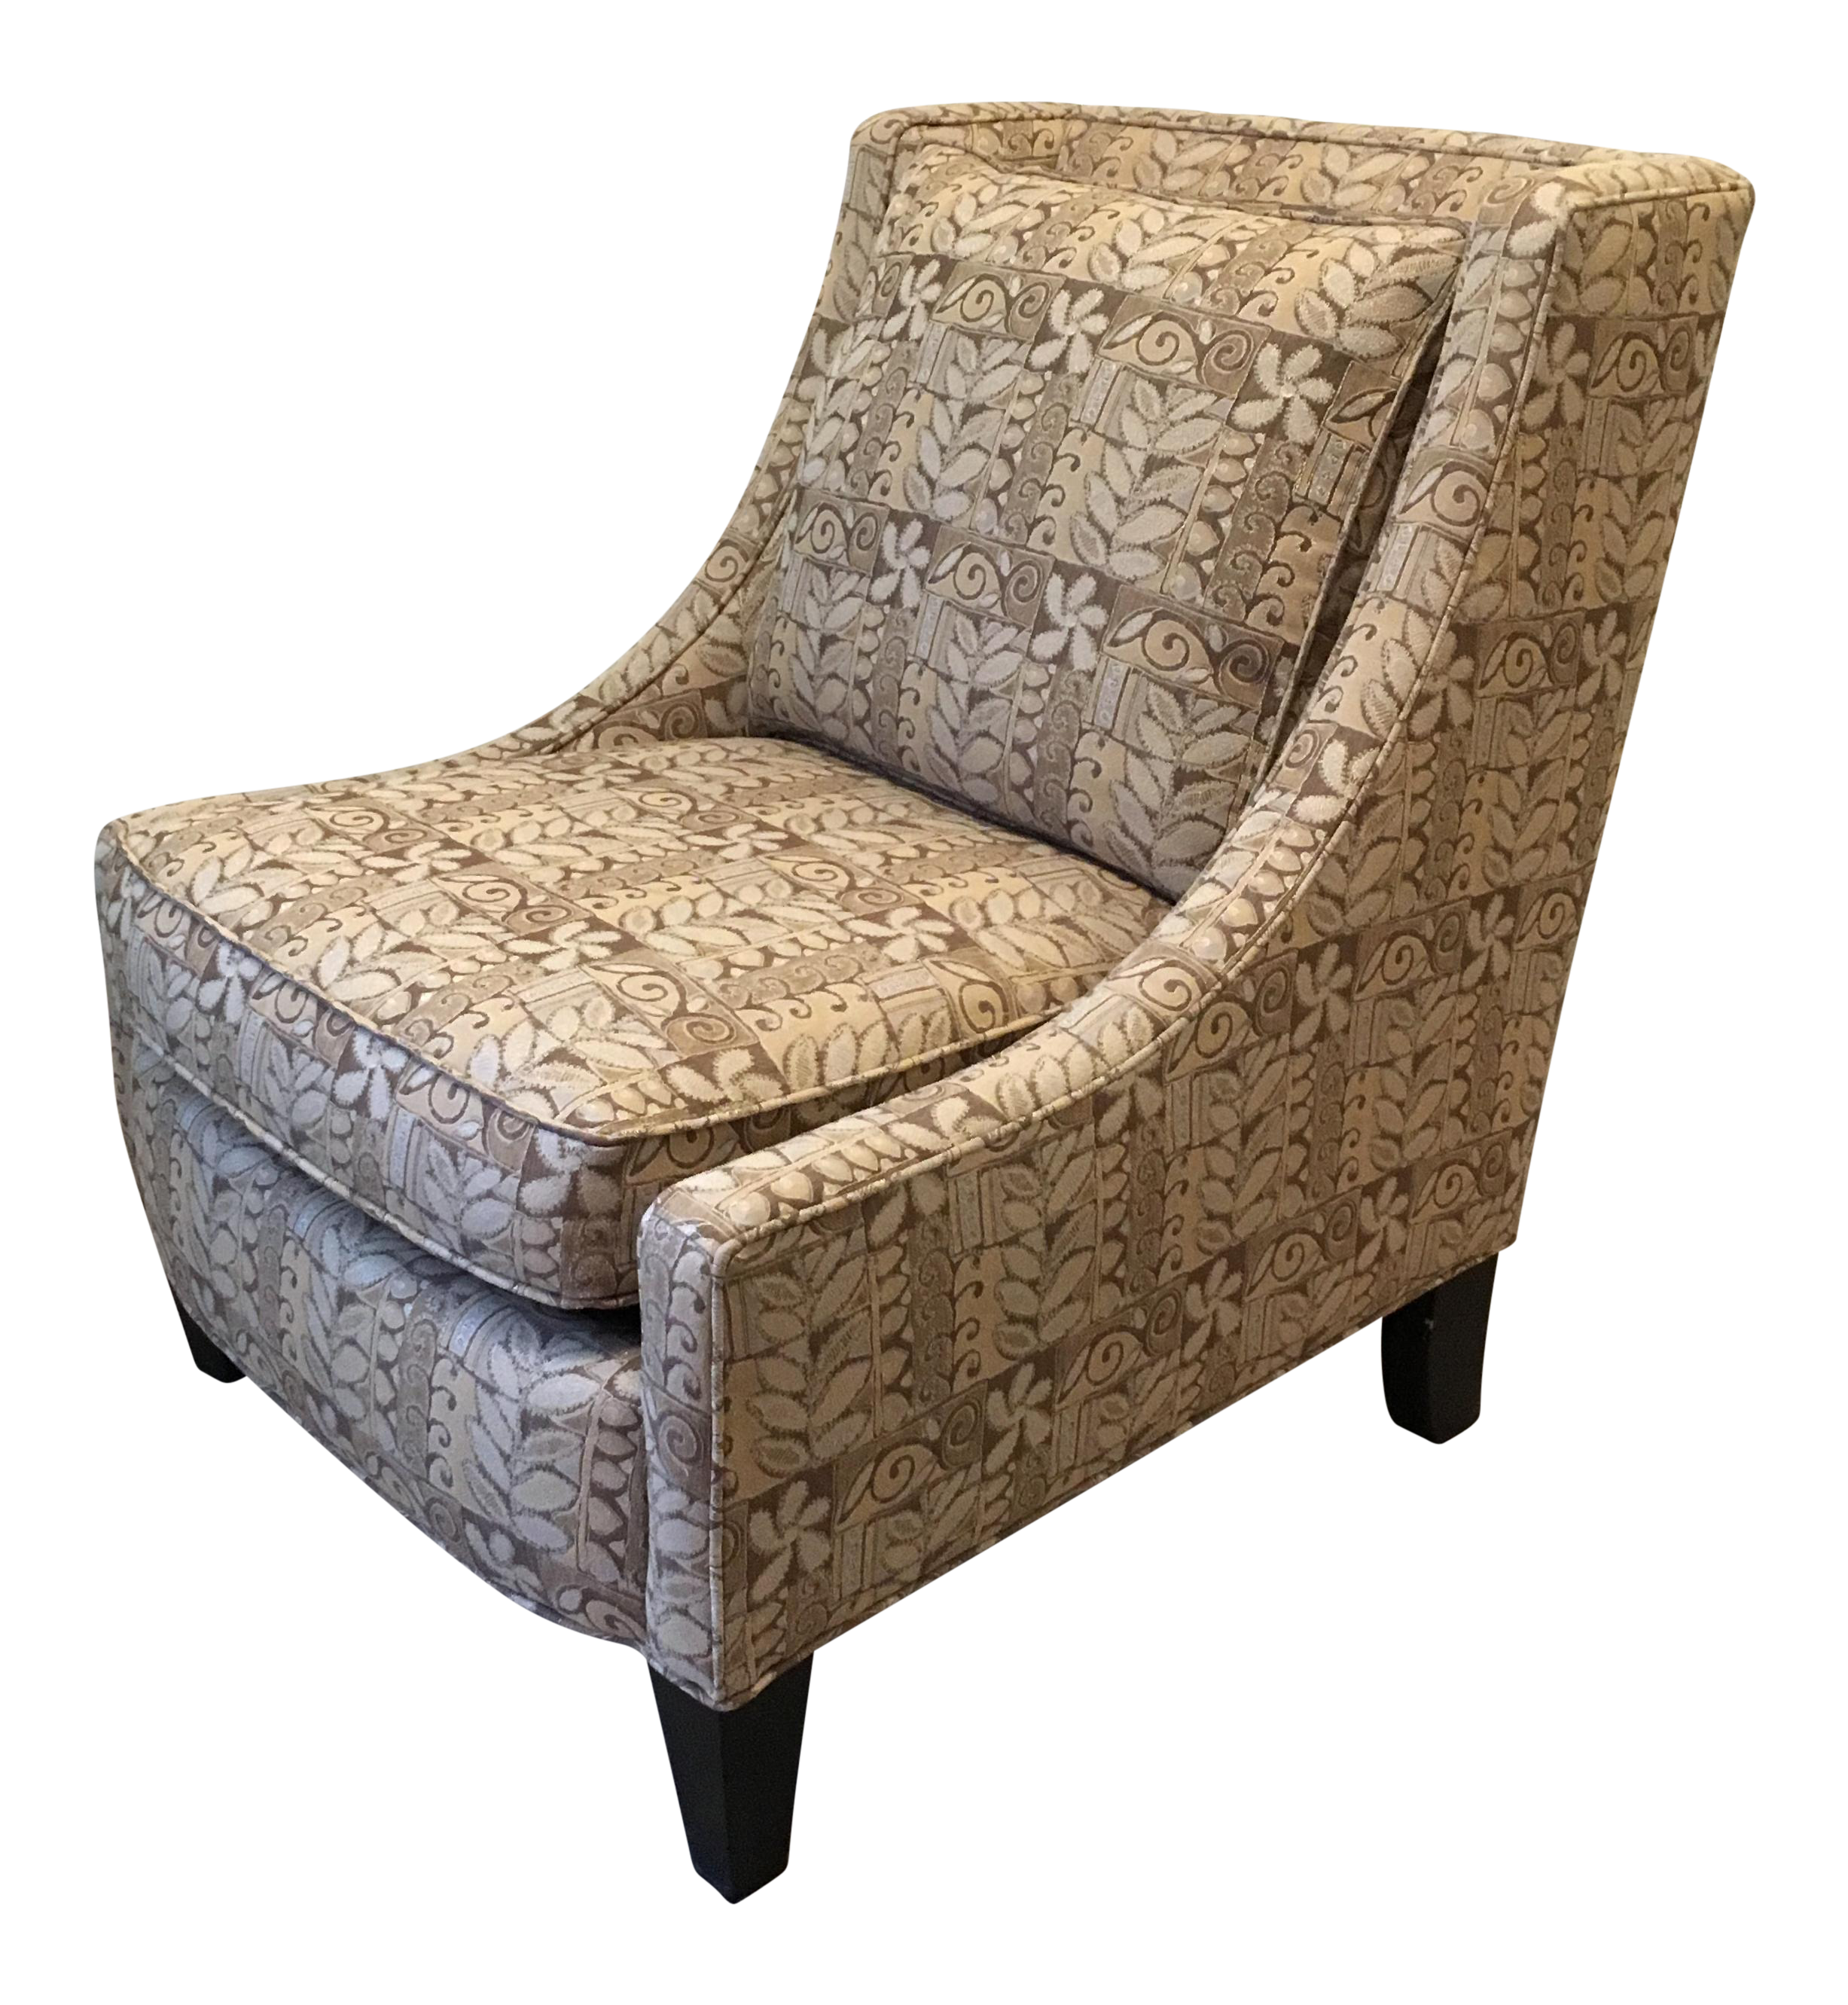 Ordinaire Broyhill Armless Club Chair   Image 1 Of 7